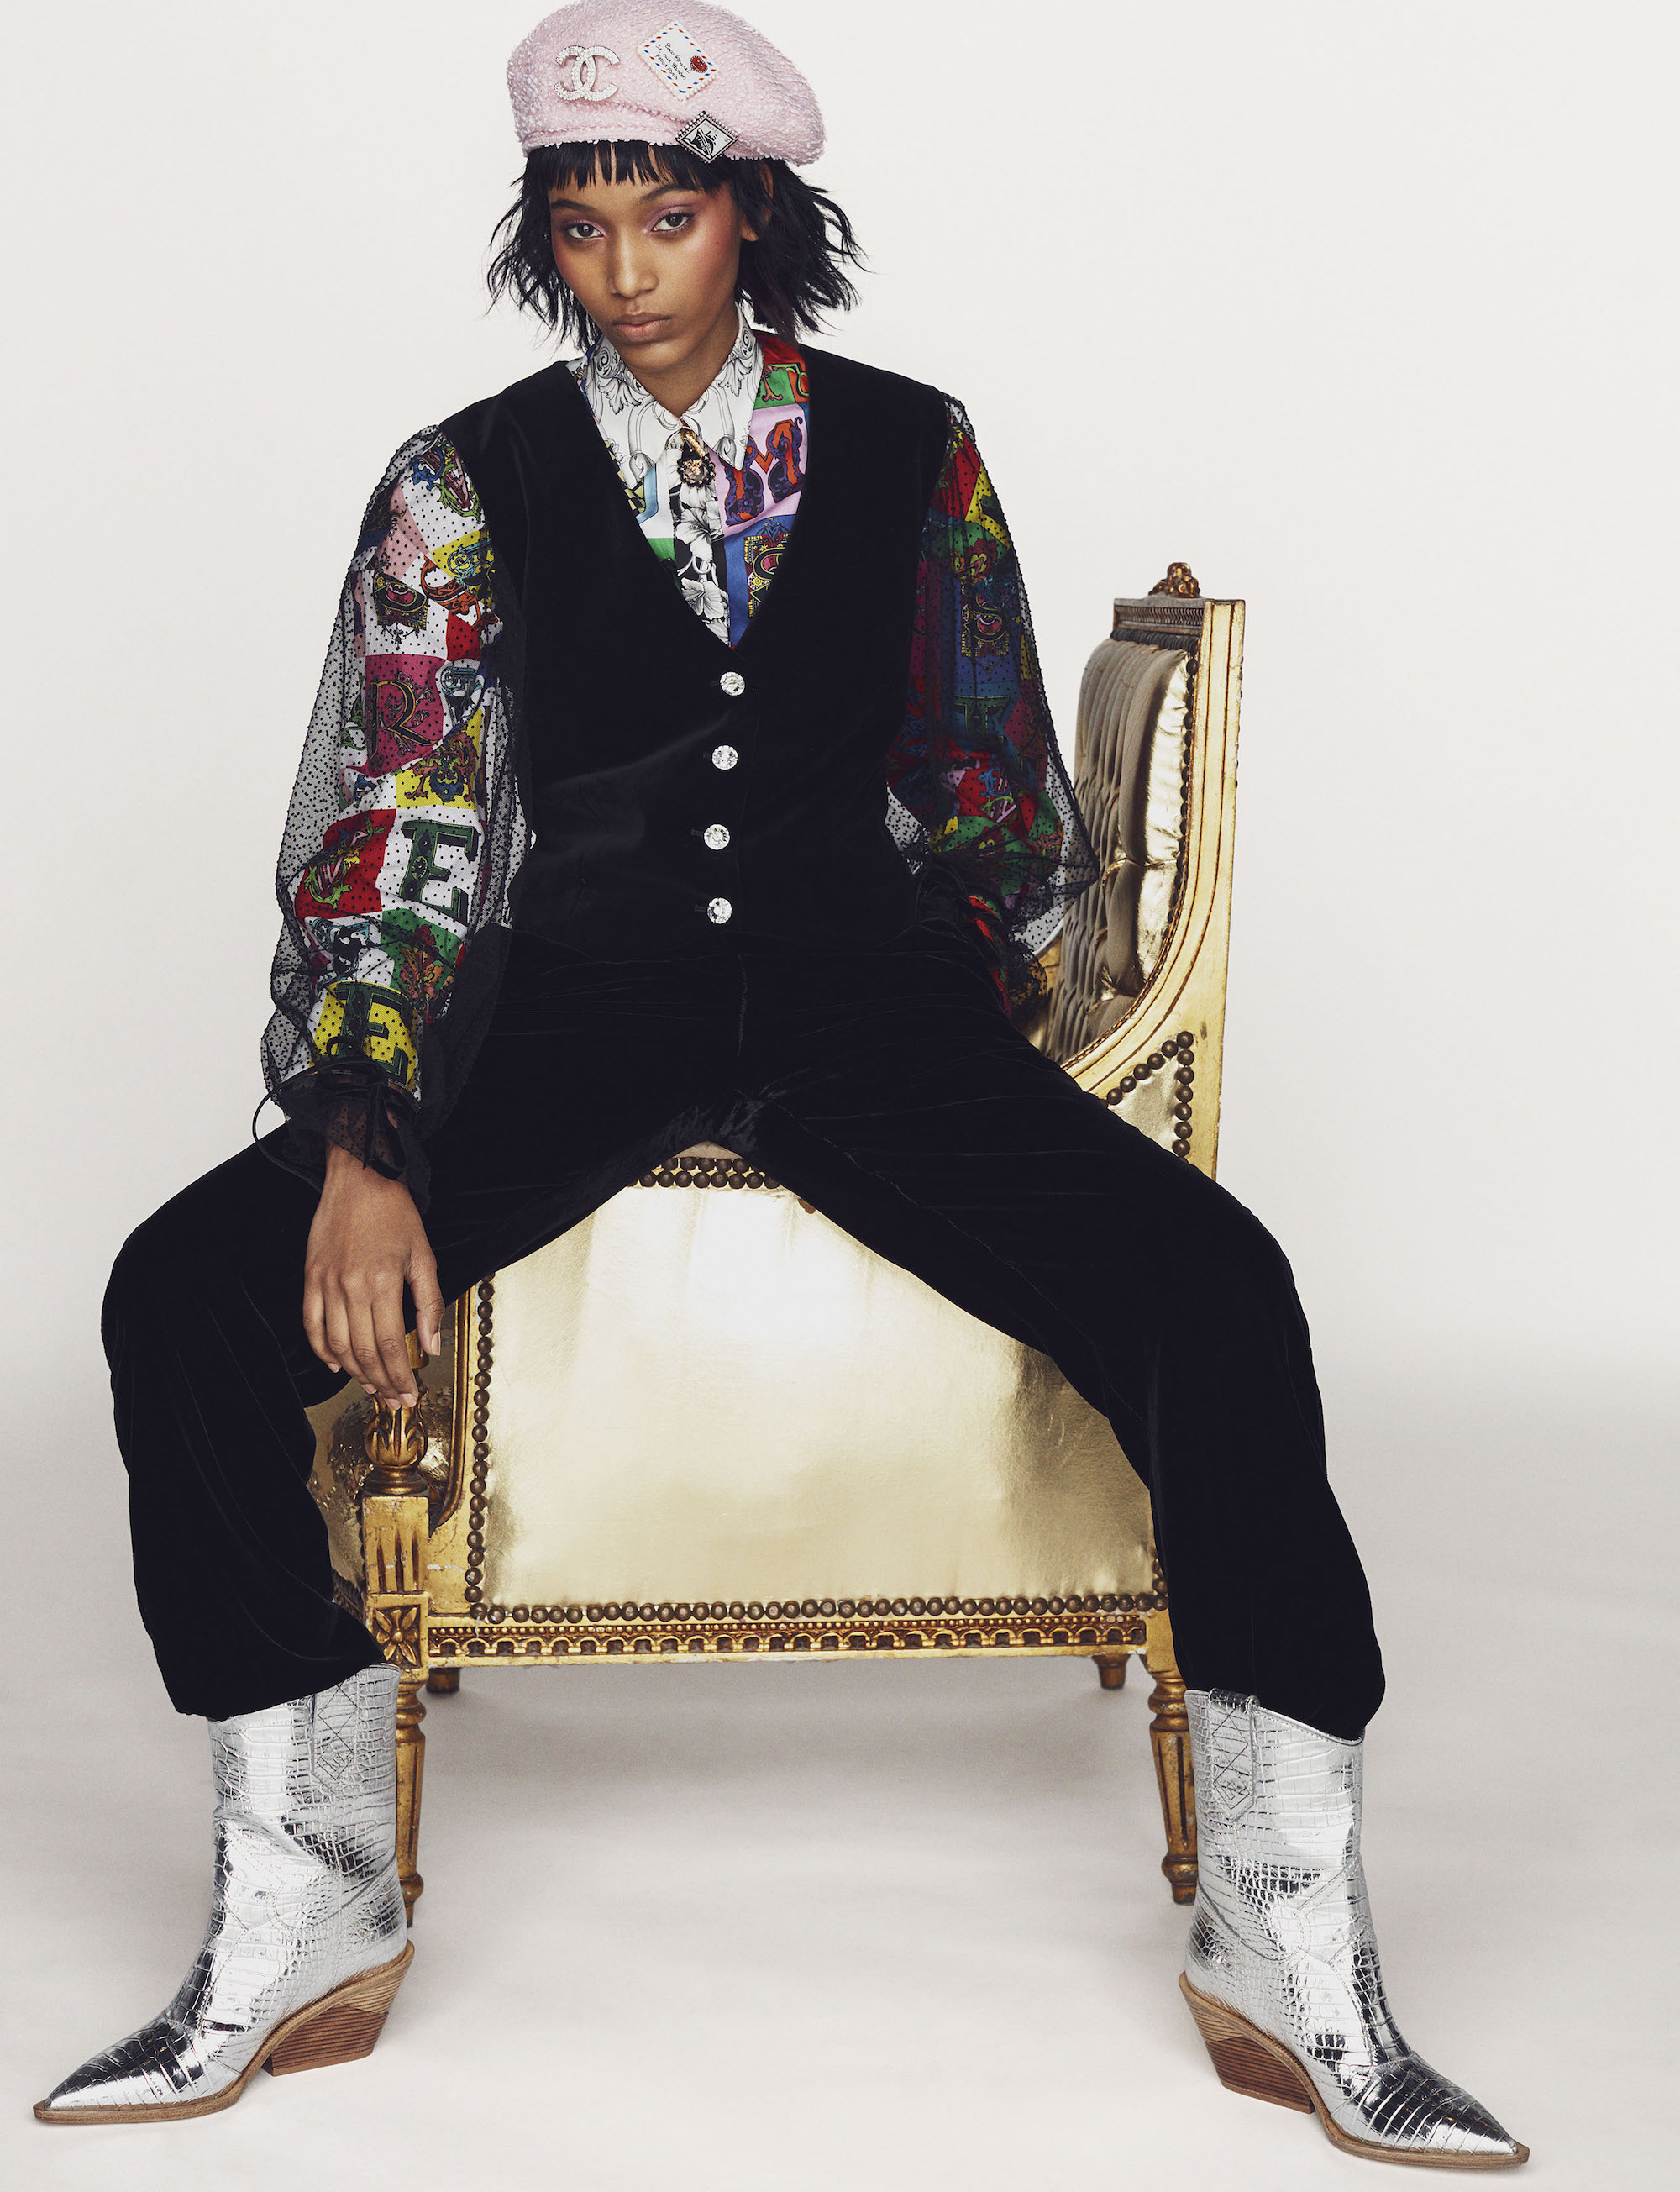 Main fashion editorial in Winter 18/19 issue model in gold chair